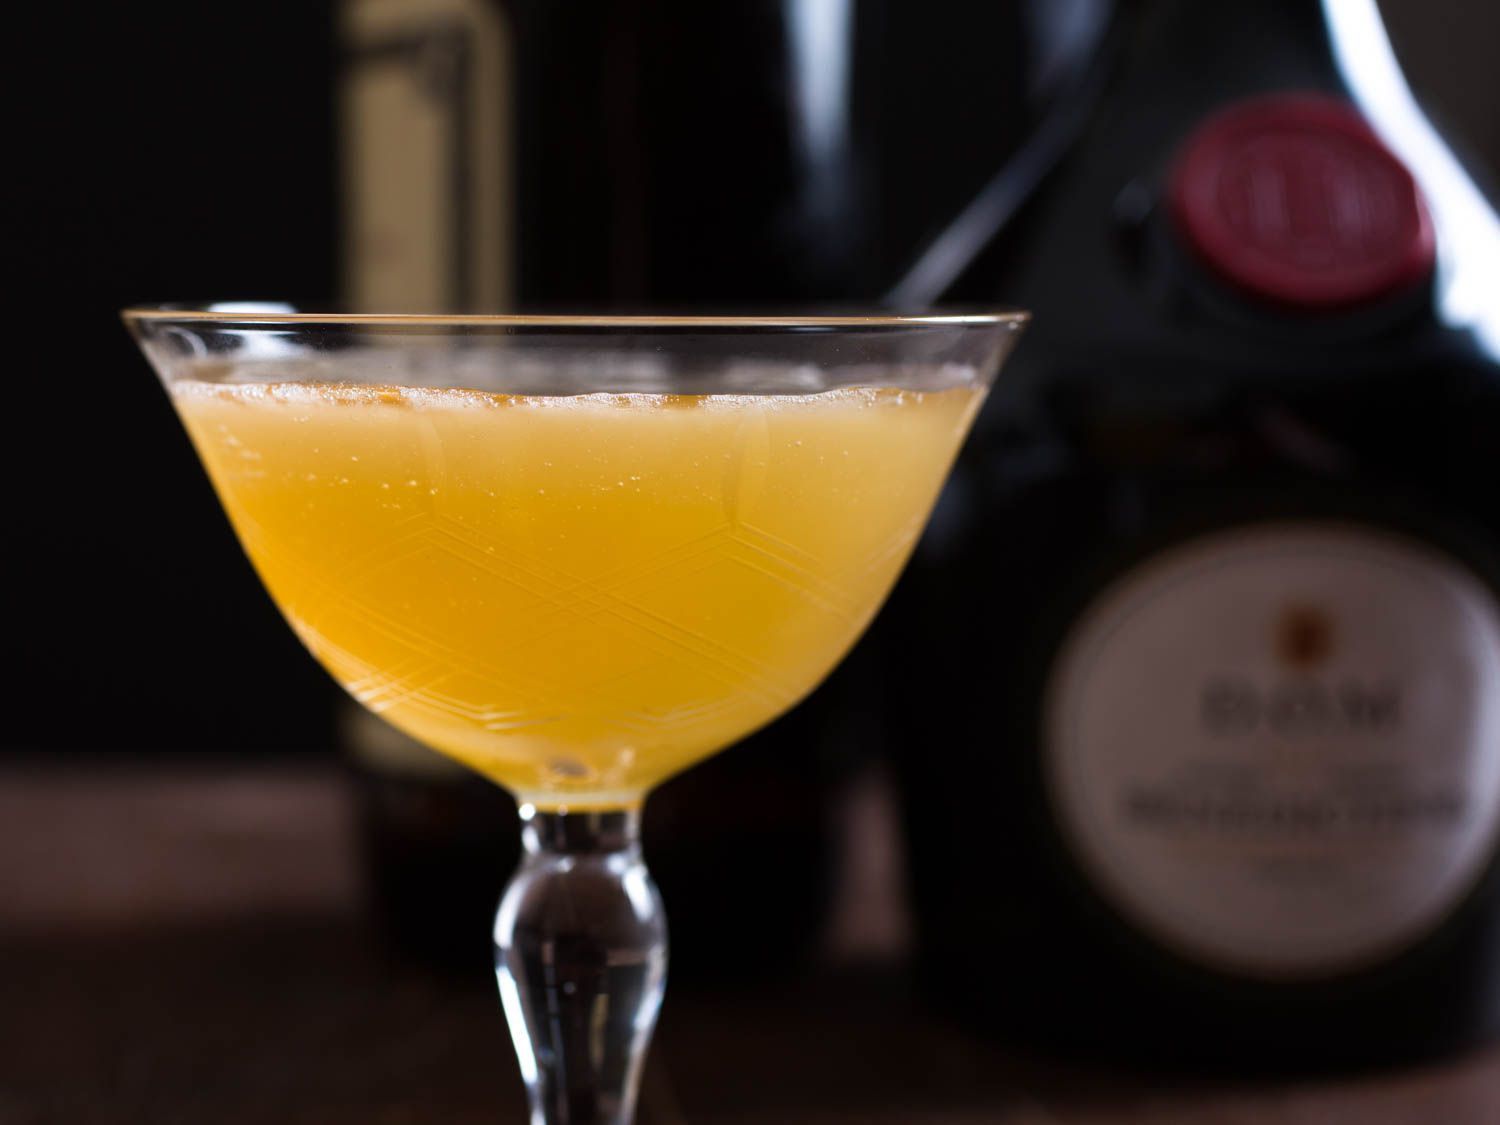 20150618-three-ingredient-cocktails-frisco-sour-vicky-wasik